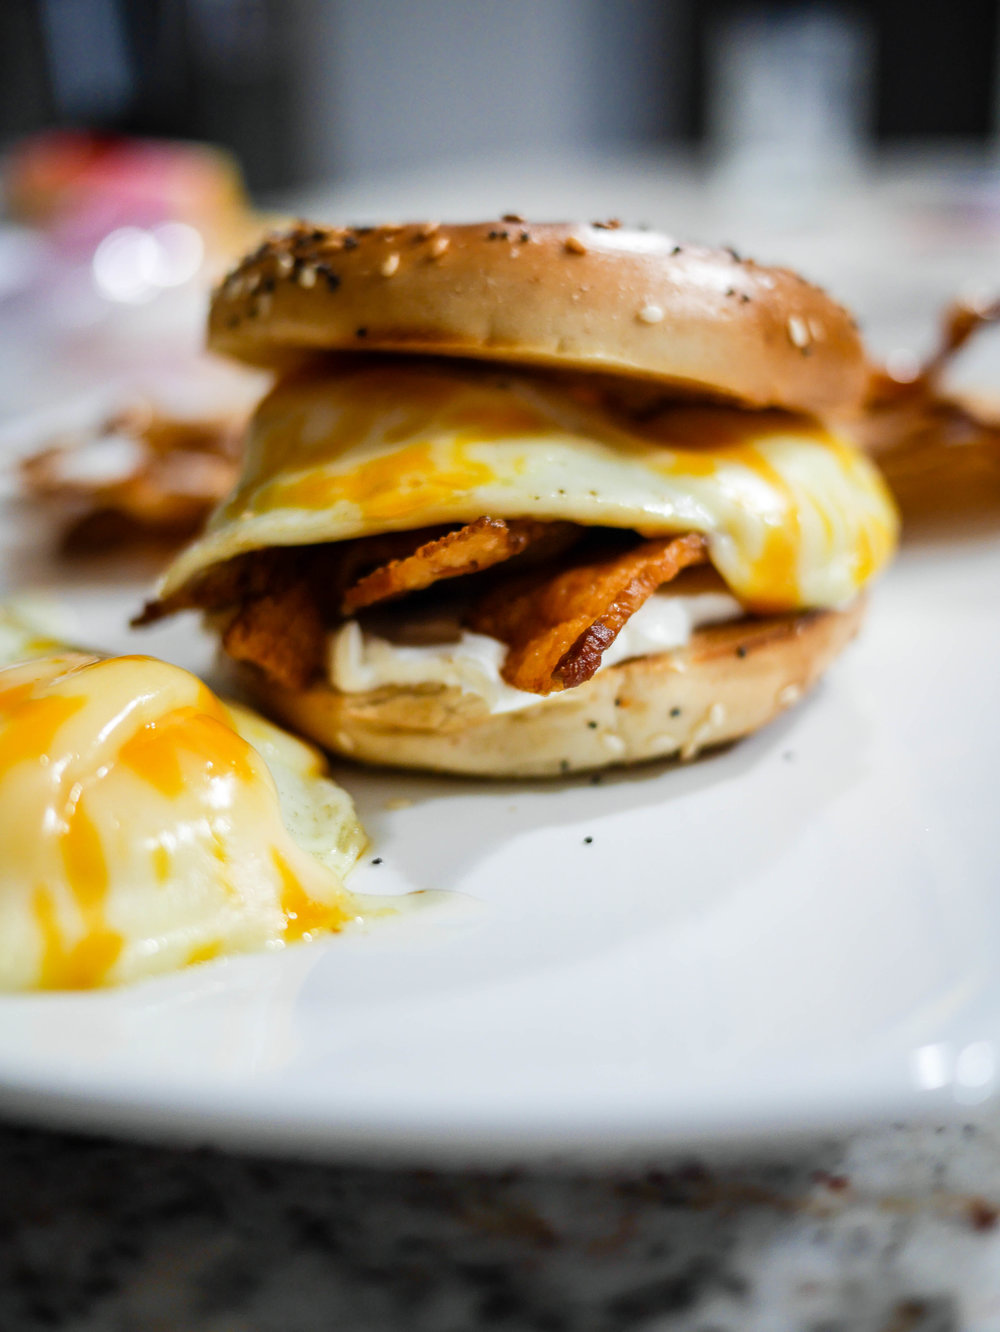 Seems pretty basic, but a couple of key components make this egg sandwich the ultimate comfort brunch item.